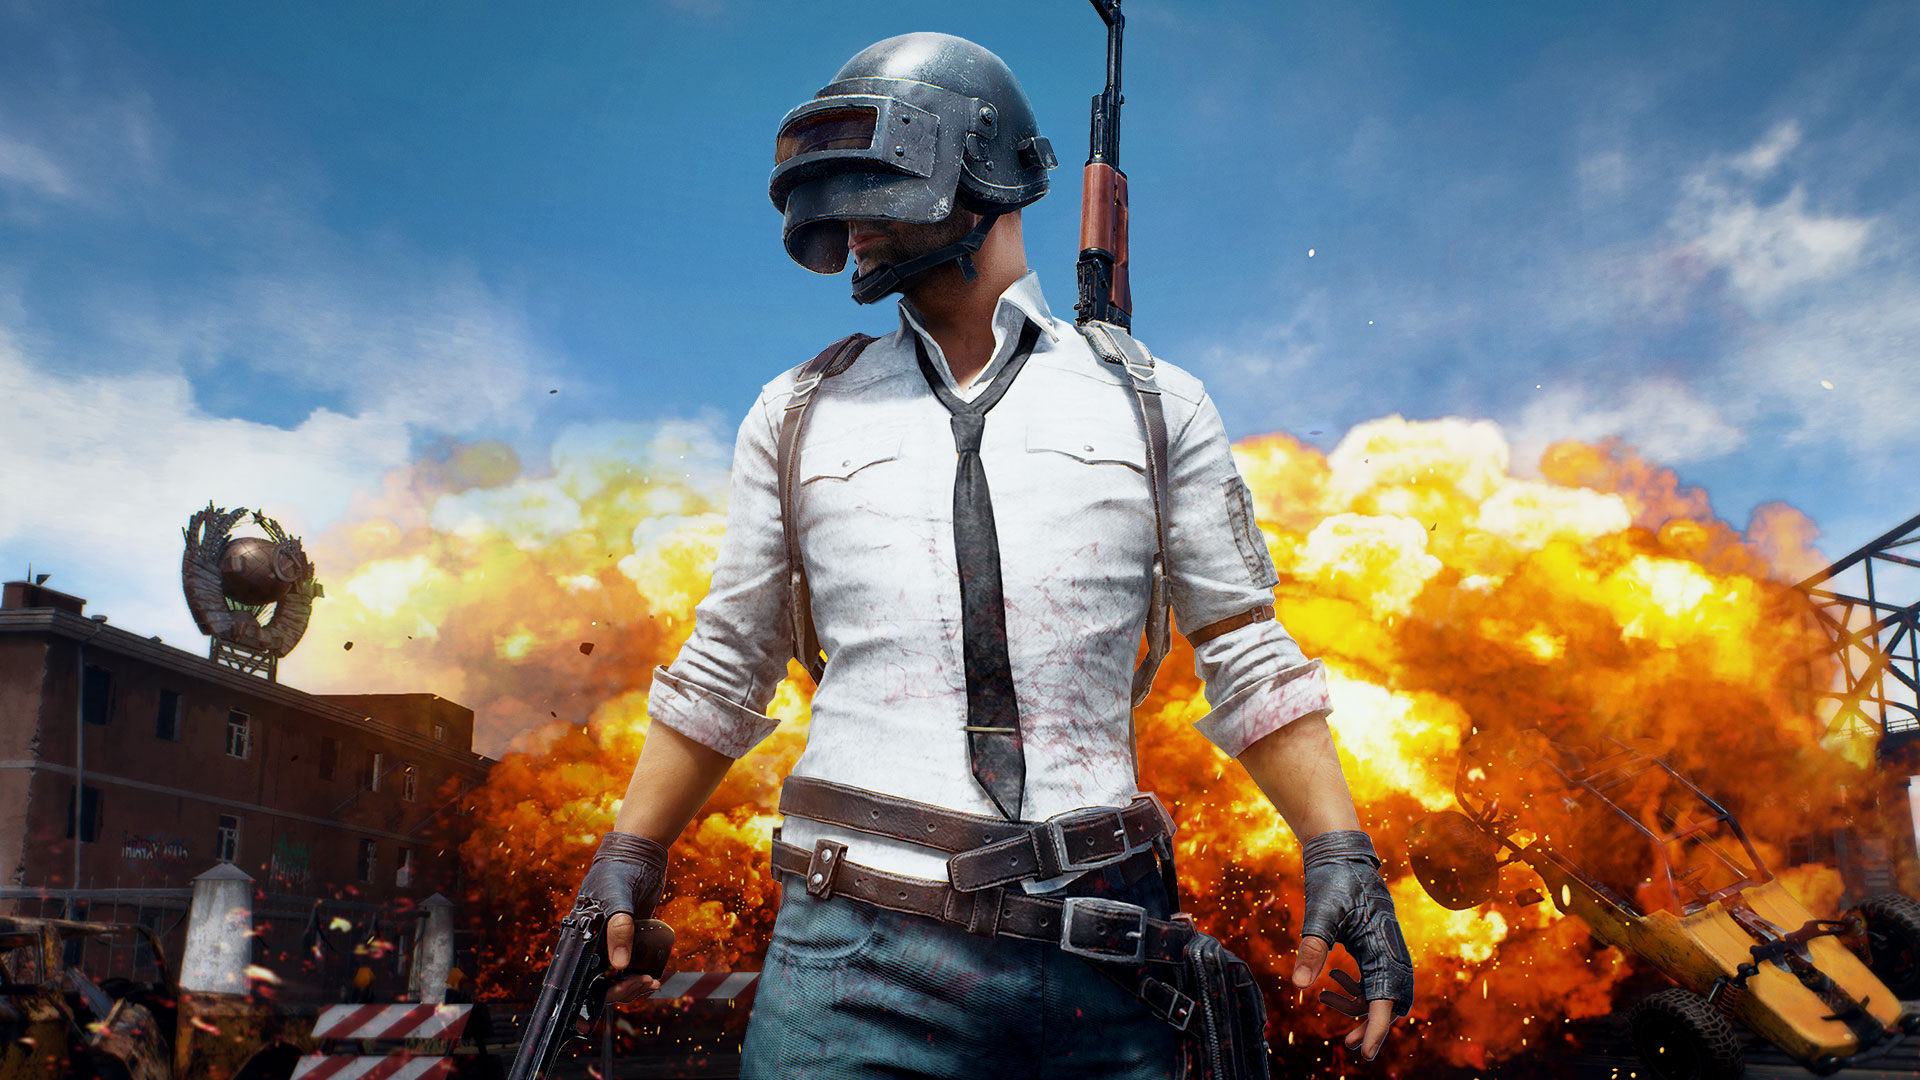 PUBG Global Championship, standardized leagues, and more coming in 2019